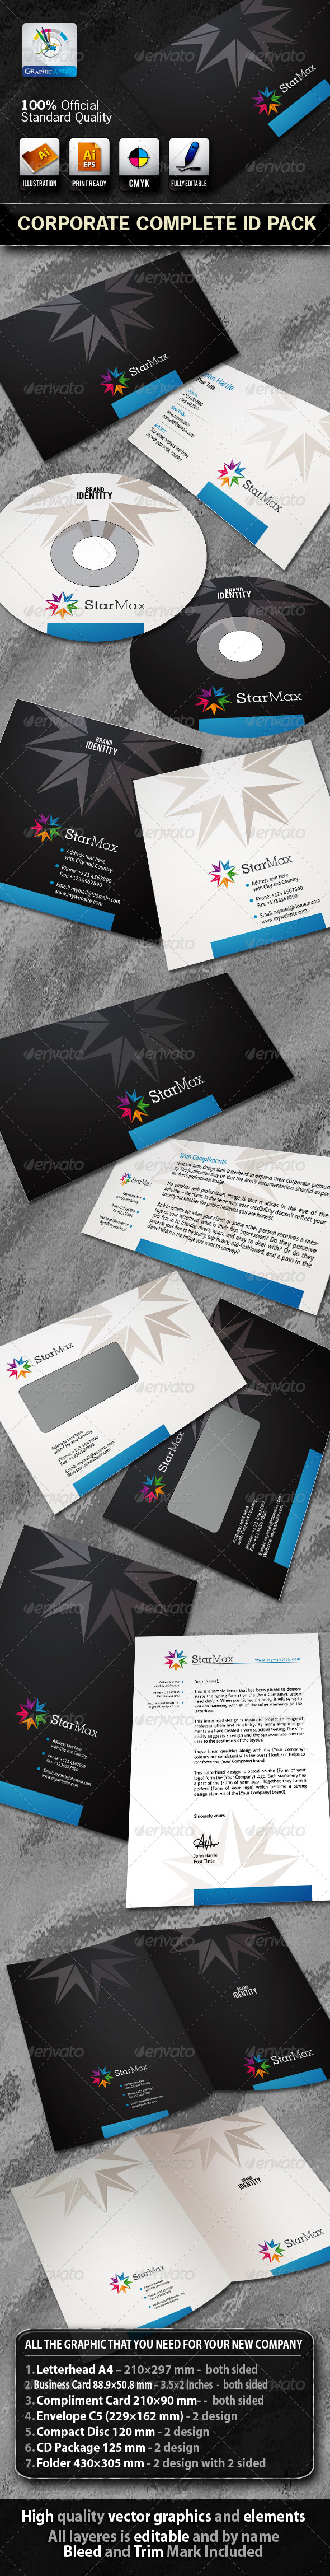 StarMax Business Corporate ID Pack With Logo - Stationery Print Templates